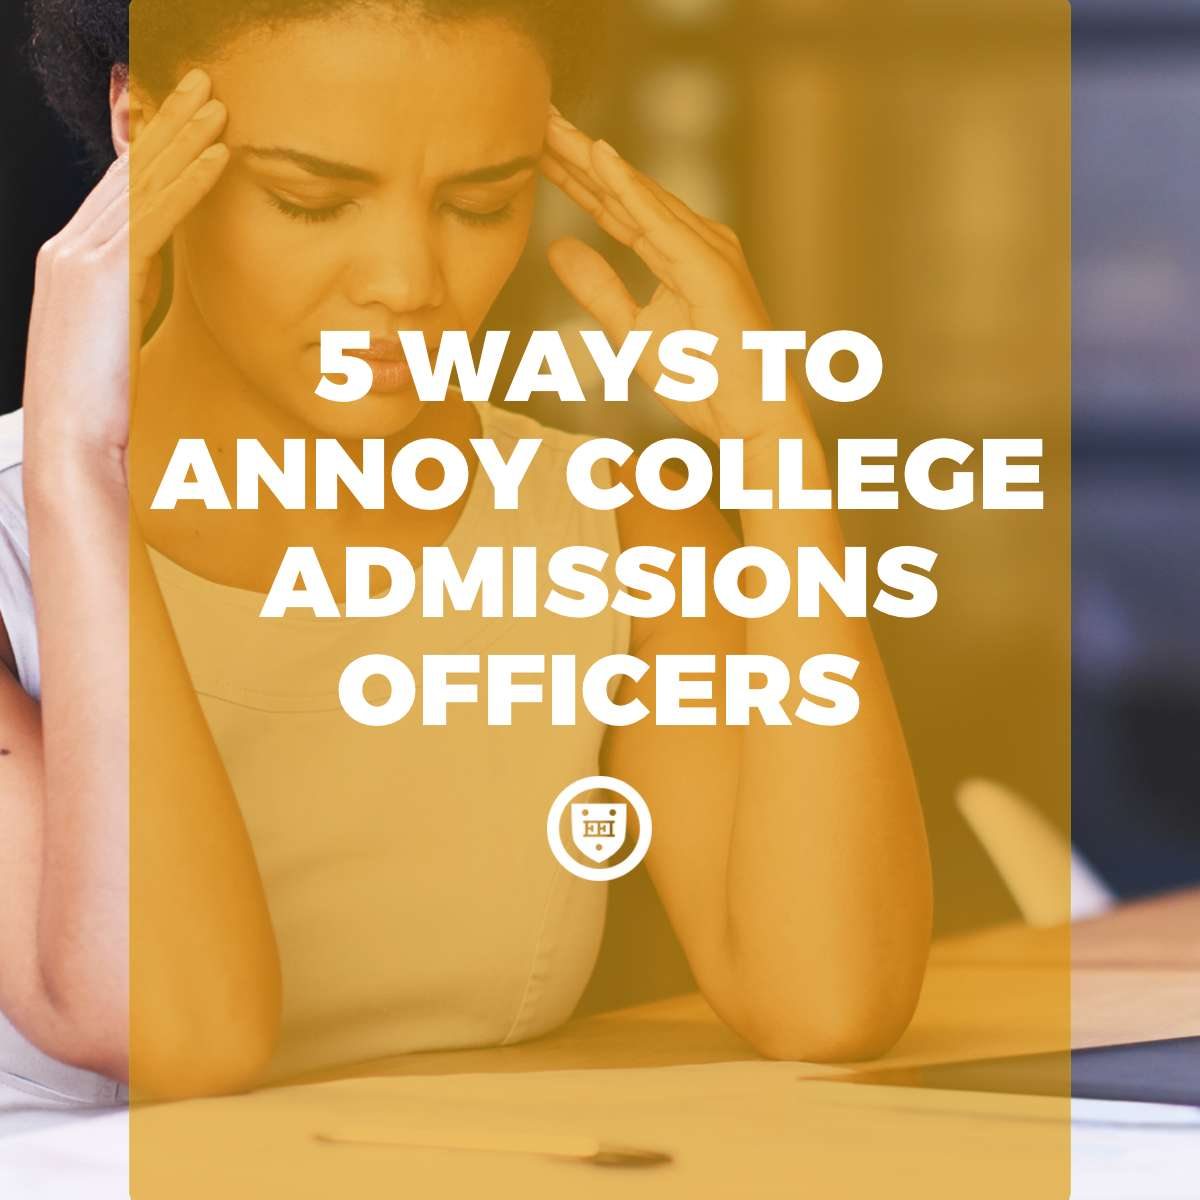 5 Ways to Annoy College Admissions Officers